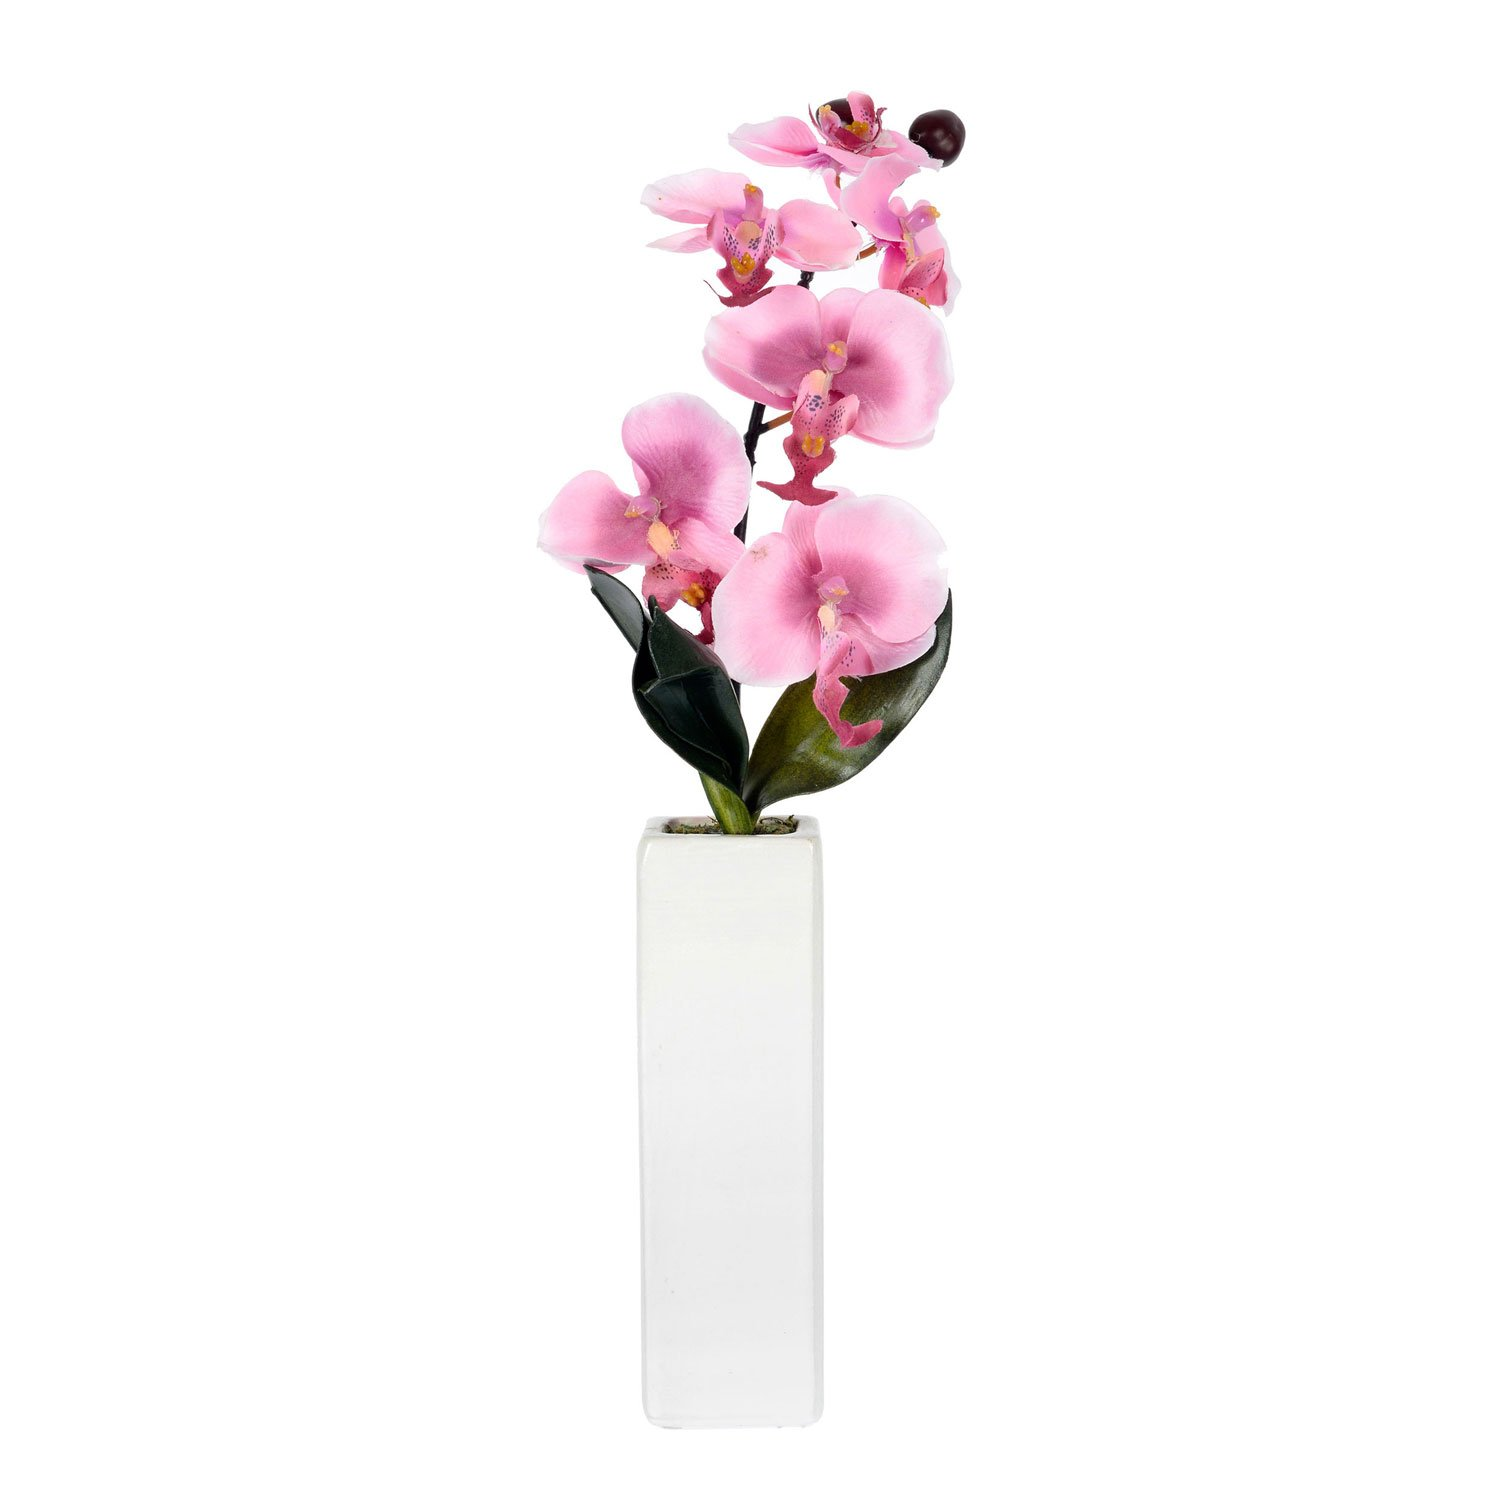 Homescapes Pink Orchid in Thin Cream Vase With Real Wood Stems, Lifelike Leaves and Silk Flowers Replica Artificial Plant